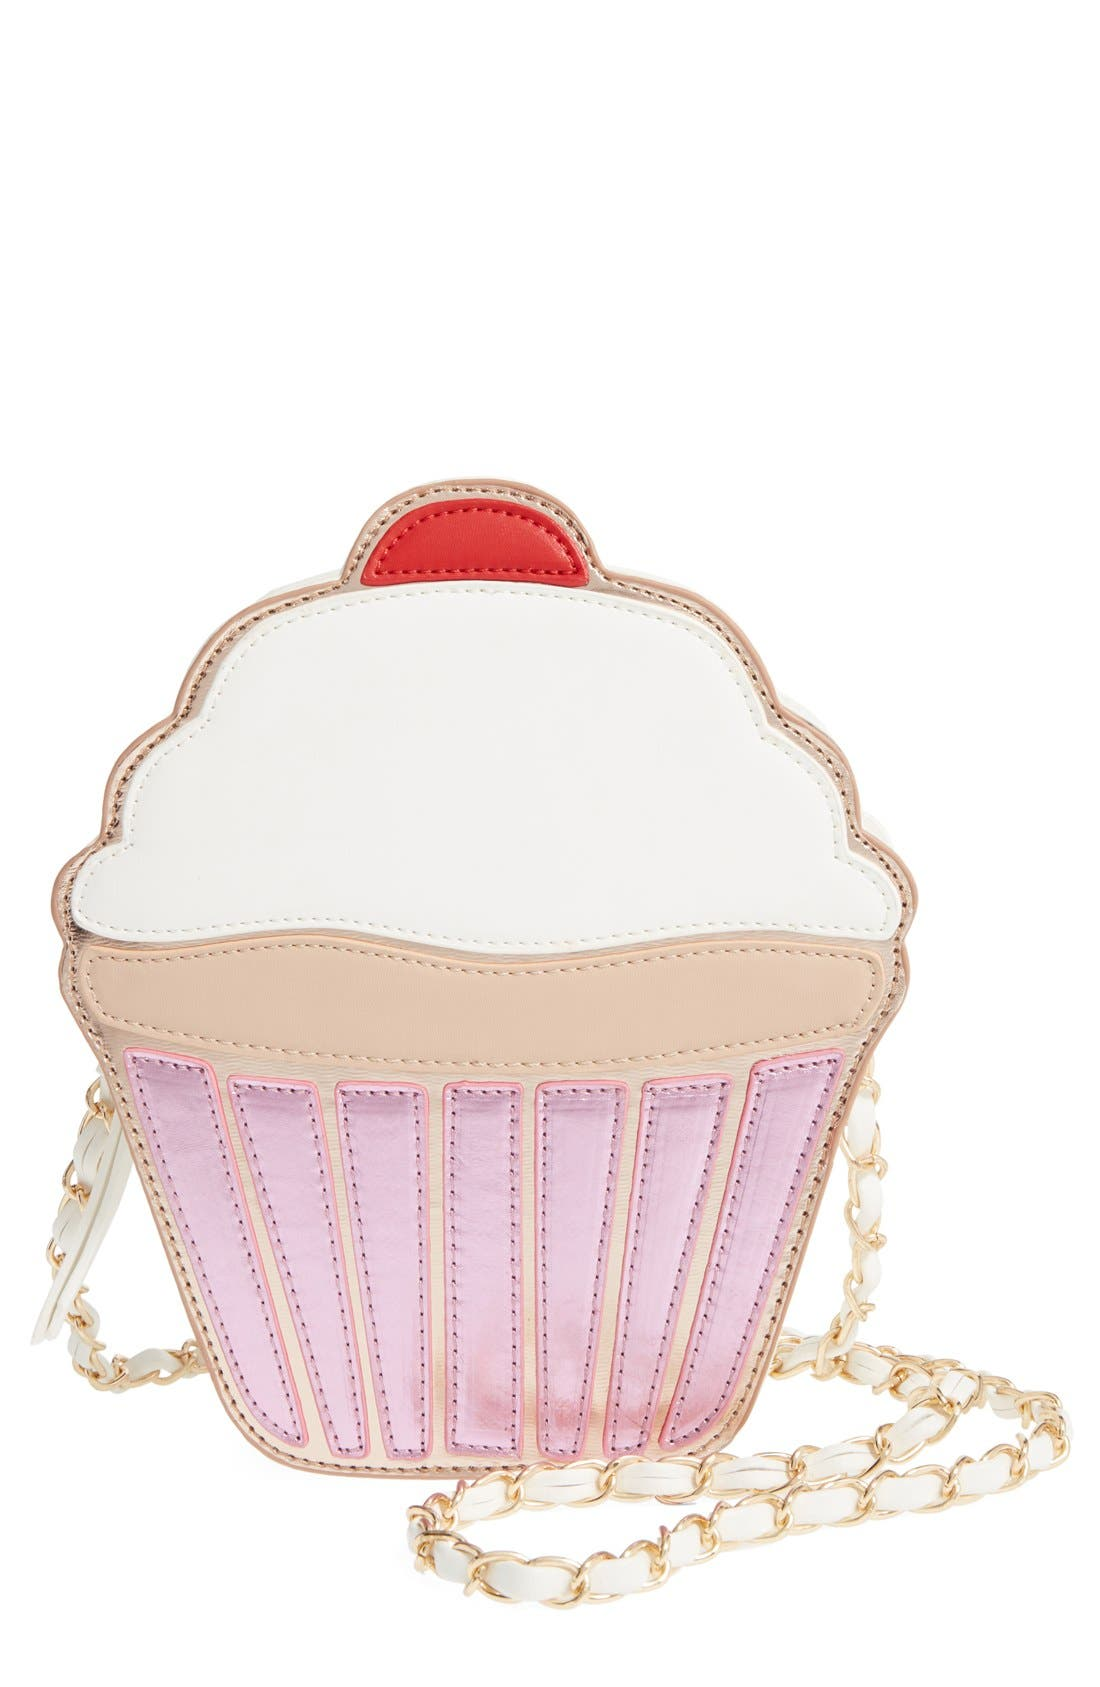 Alternate Image 1 Selected - Nila Anthony 'Cupcake' Faux Leather Crossbody Bag